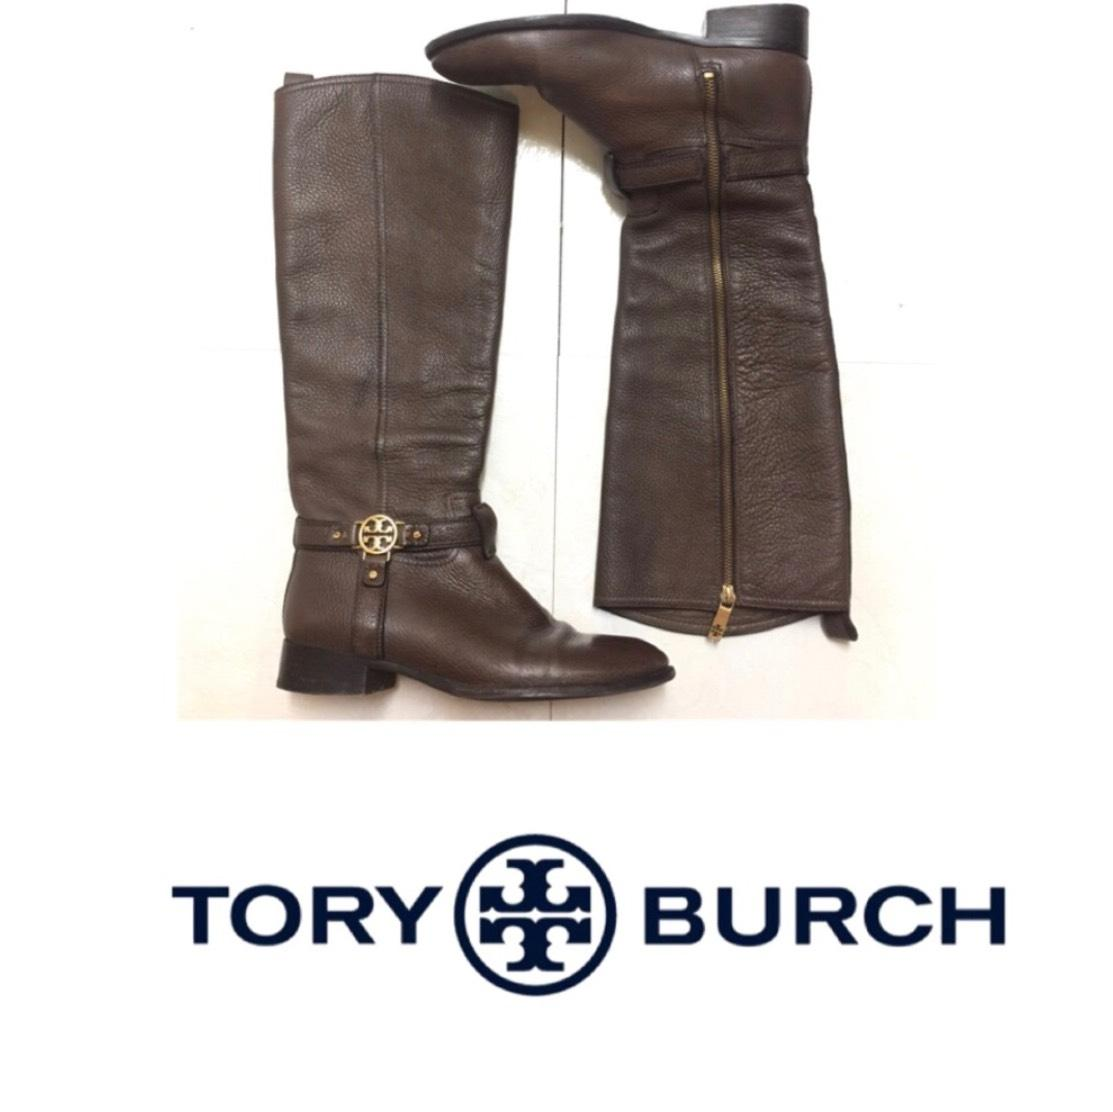 Tory Burch Brown Bristol Pebbled Leather Riding Boots/Booties Size US 9 Regular (M, B)